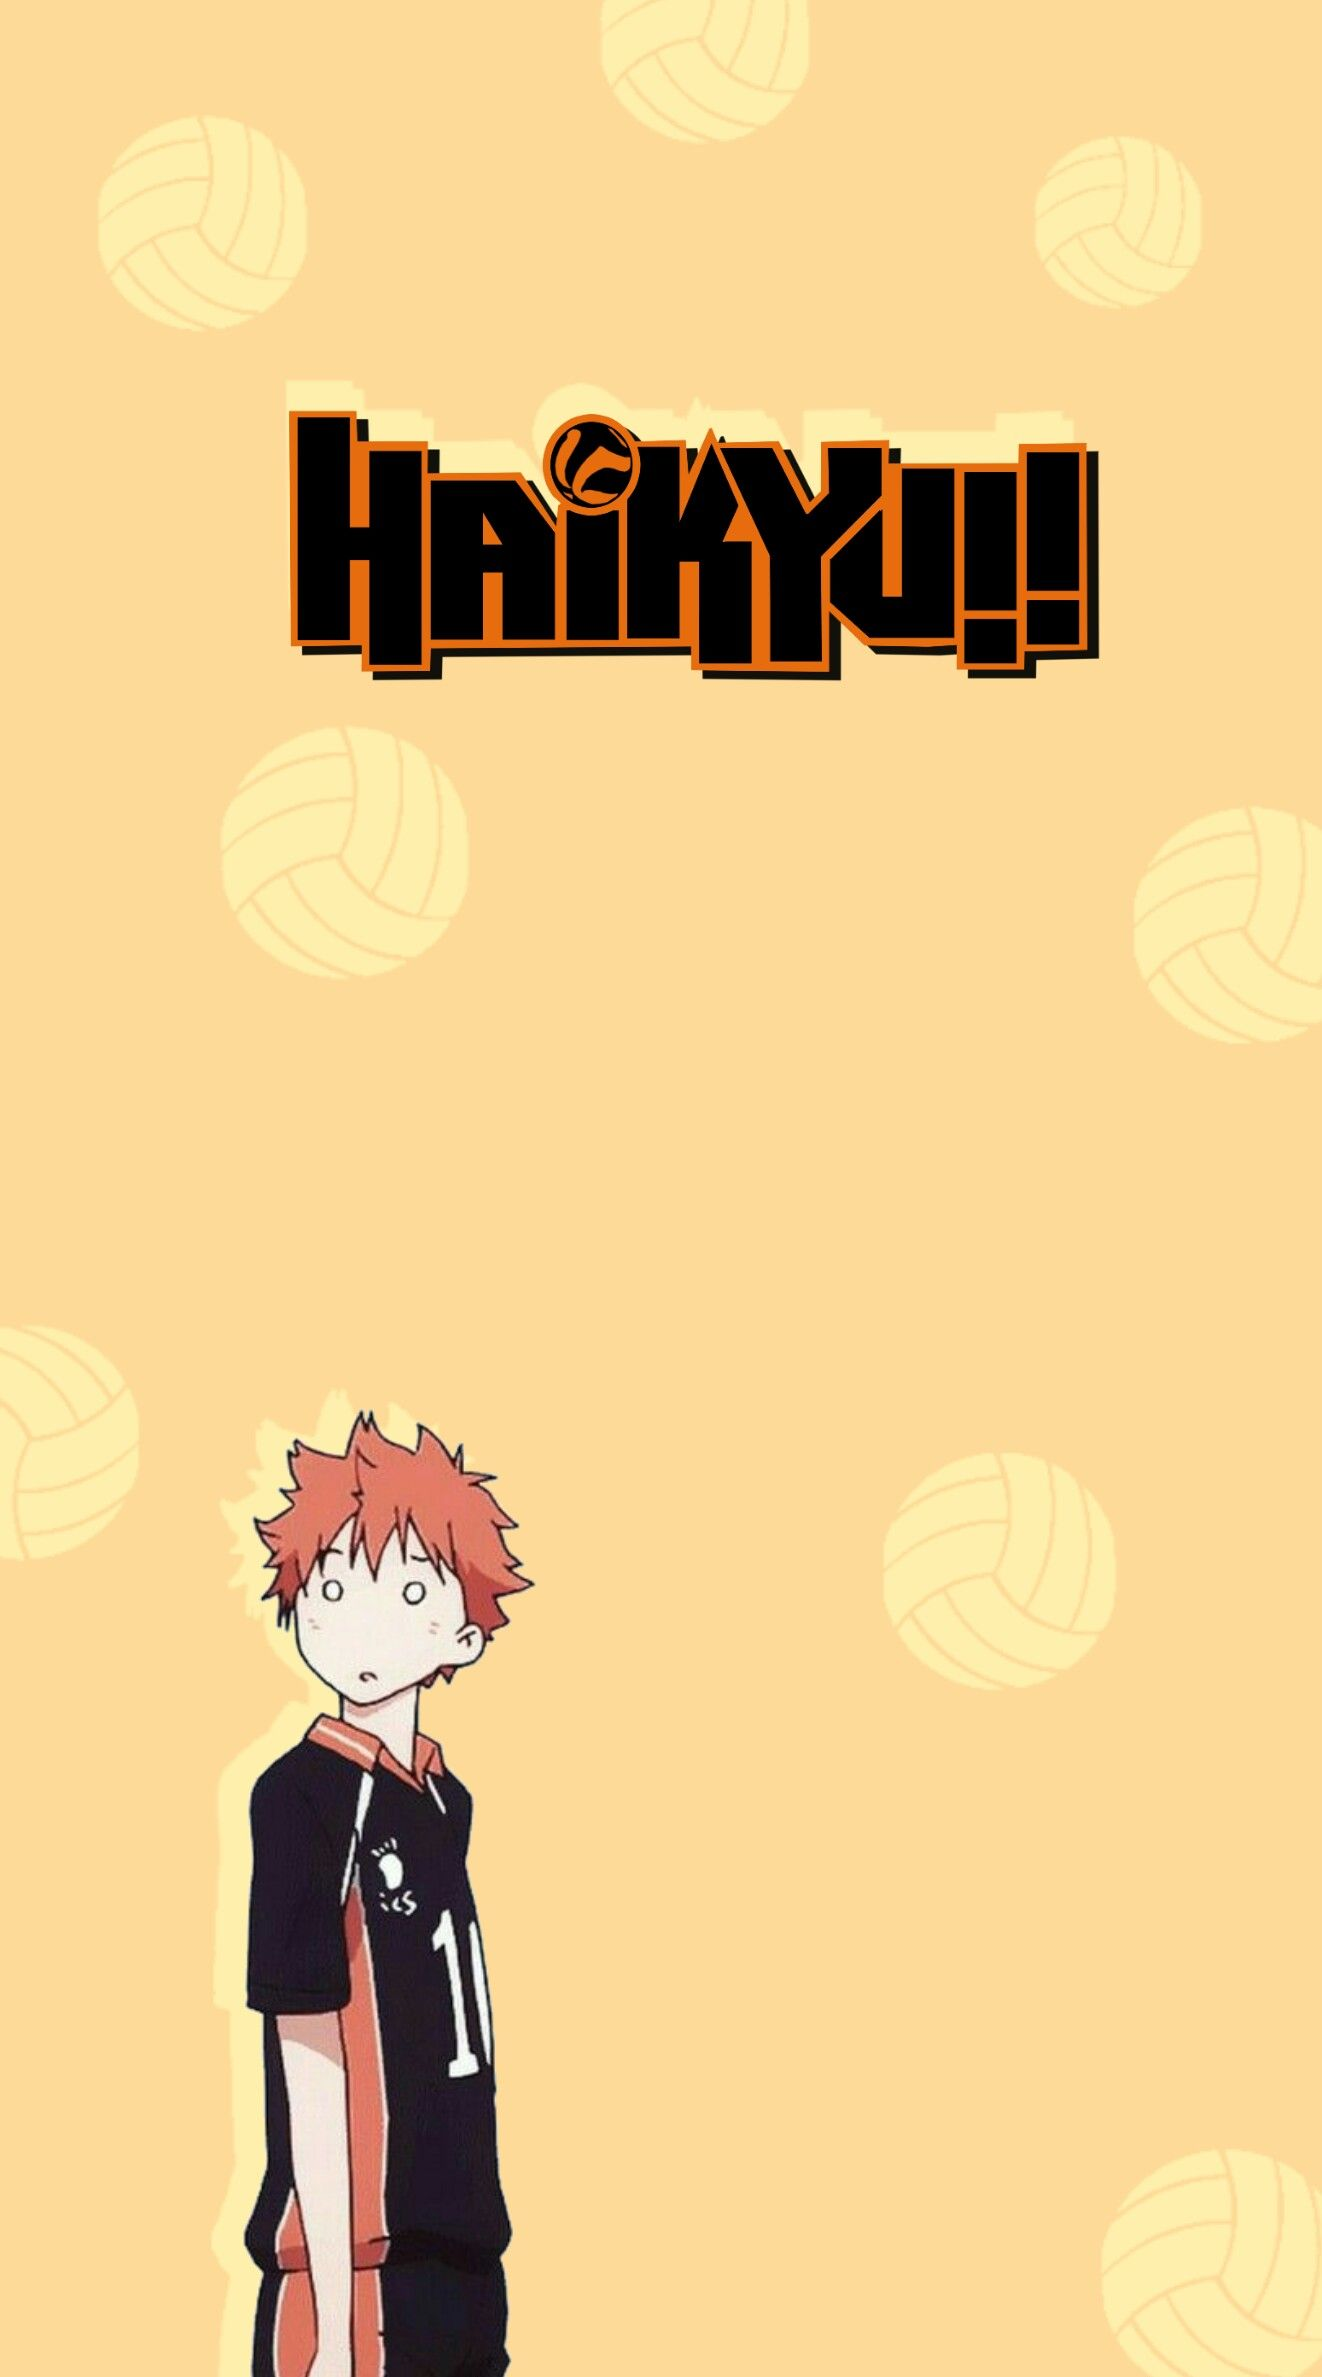 Haikyuu Wallpaper Haikyuu Haikyuu Wallpaper Hinatashouyou Cute Anime Wallpaper Haikyuu Wallpaper Anime Wallpaper Iphone